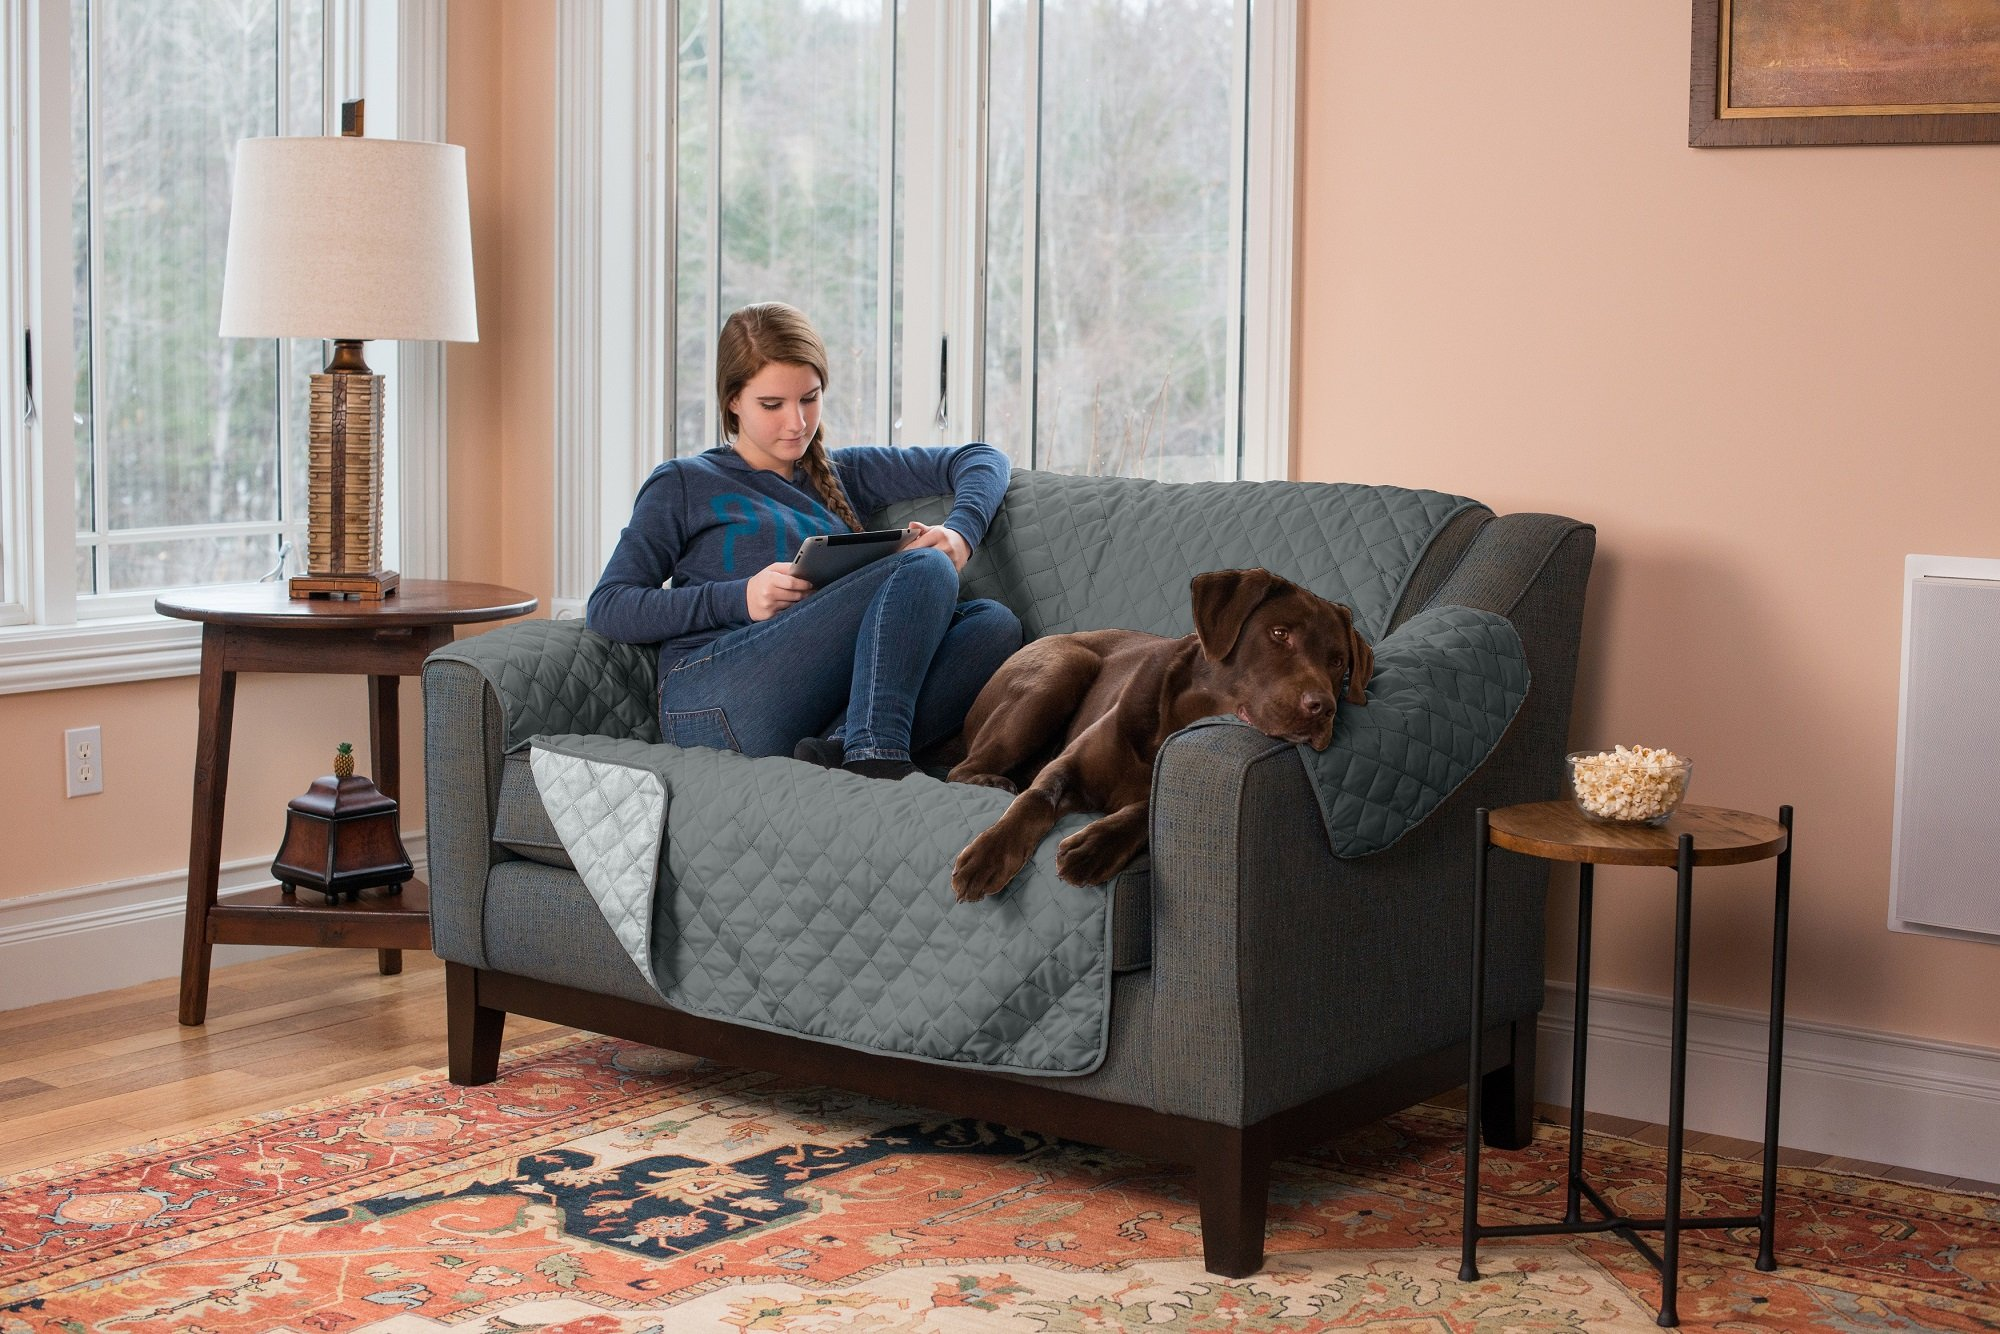 Home Fashion Designs Deluxe Reversible Quilted Furniture Protector and PET PROTECTOR. Two Fresh Looks in One. Perfect for Families with Pets and Kids. By Brand. (Love Seat, Light Grey/Dark Grey)